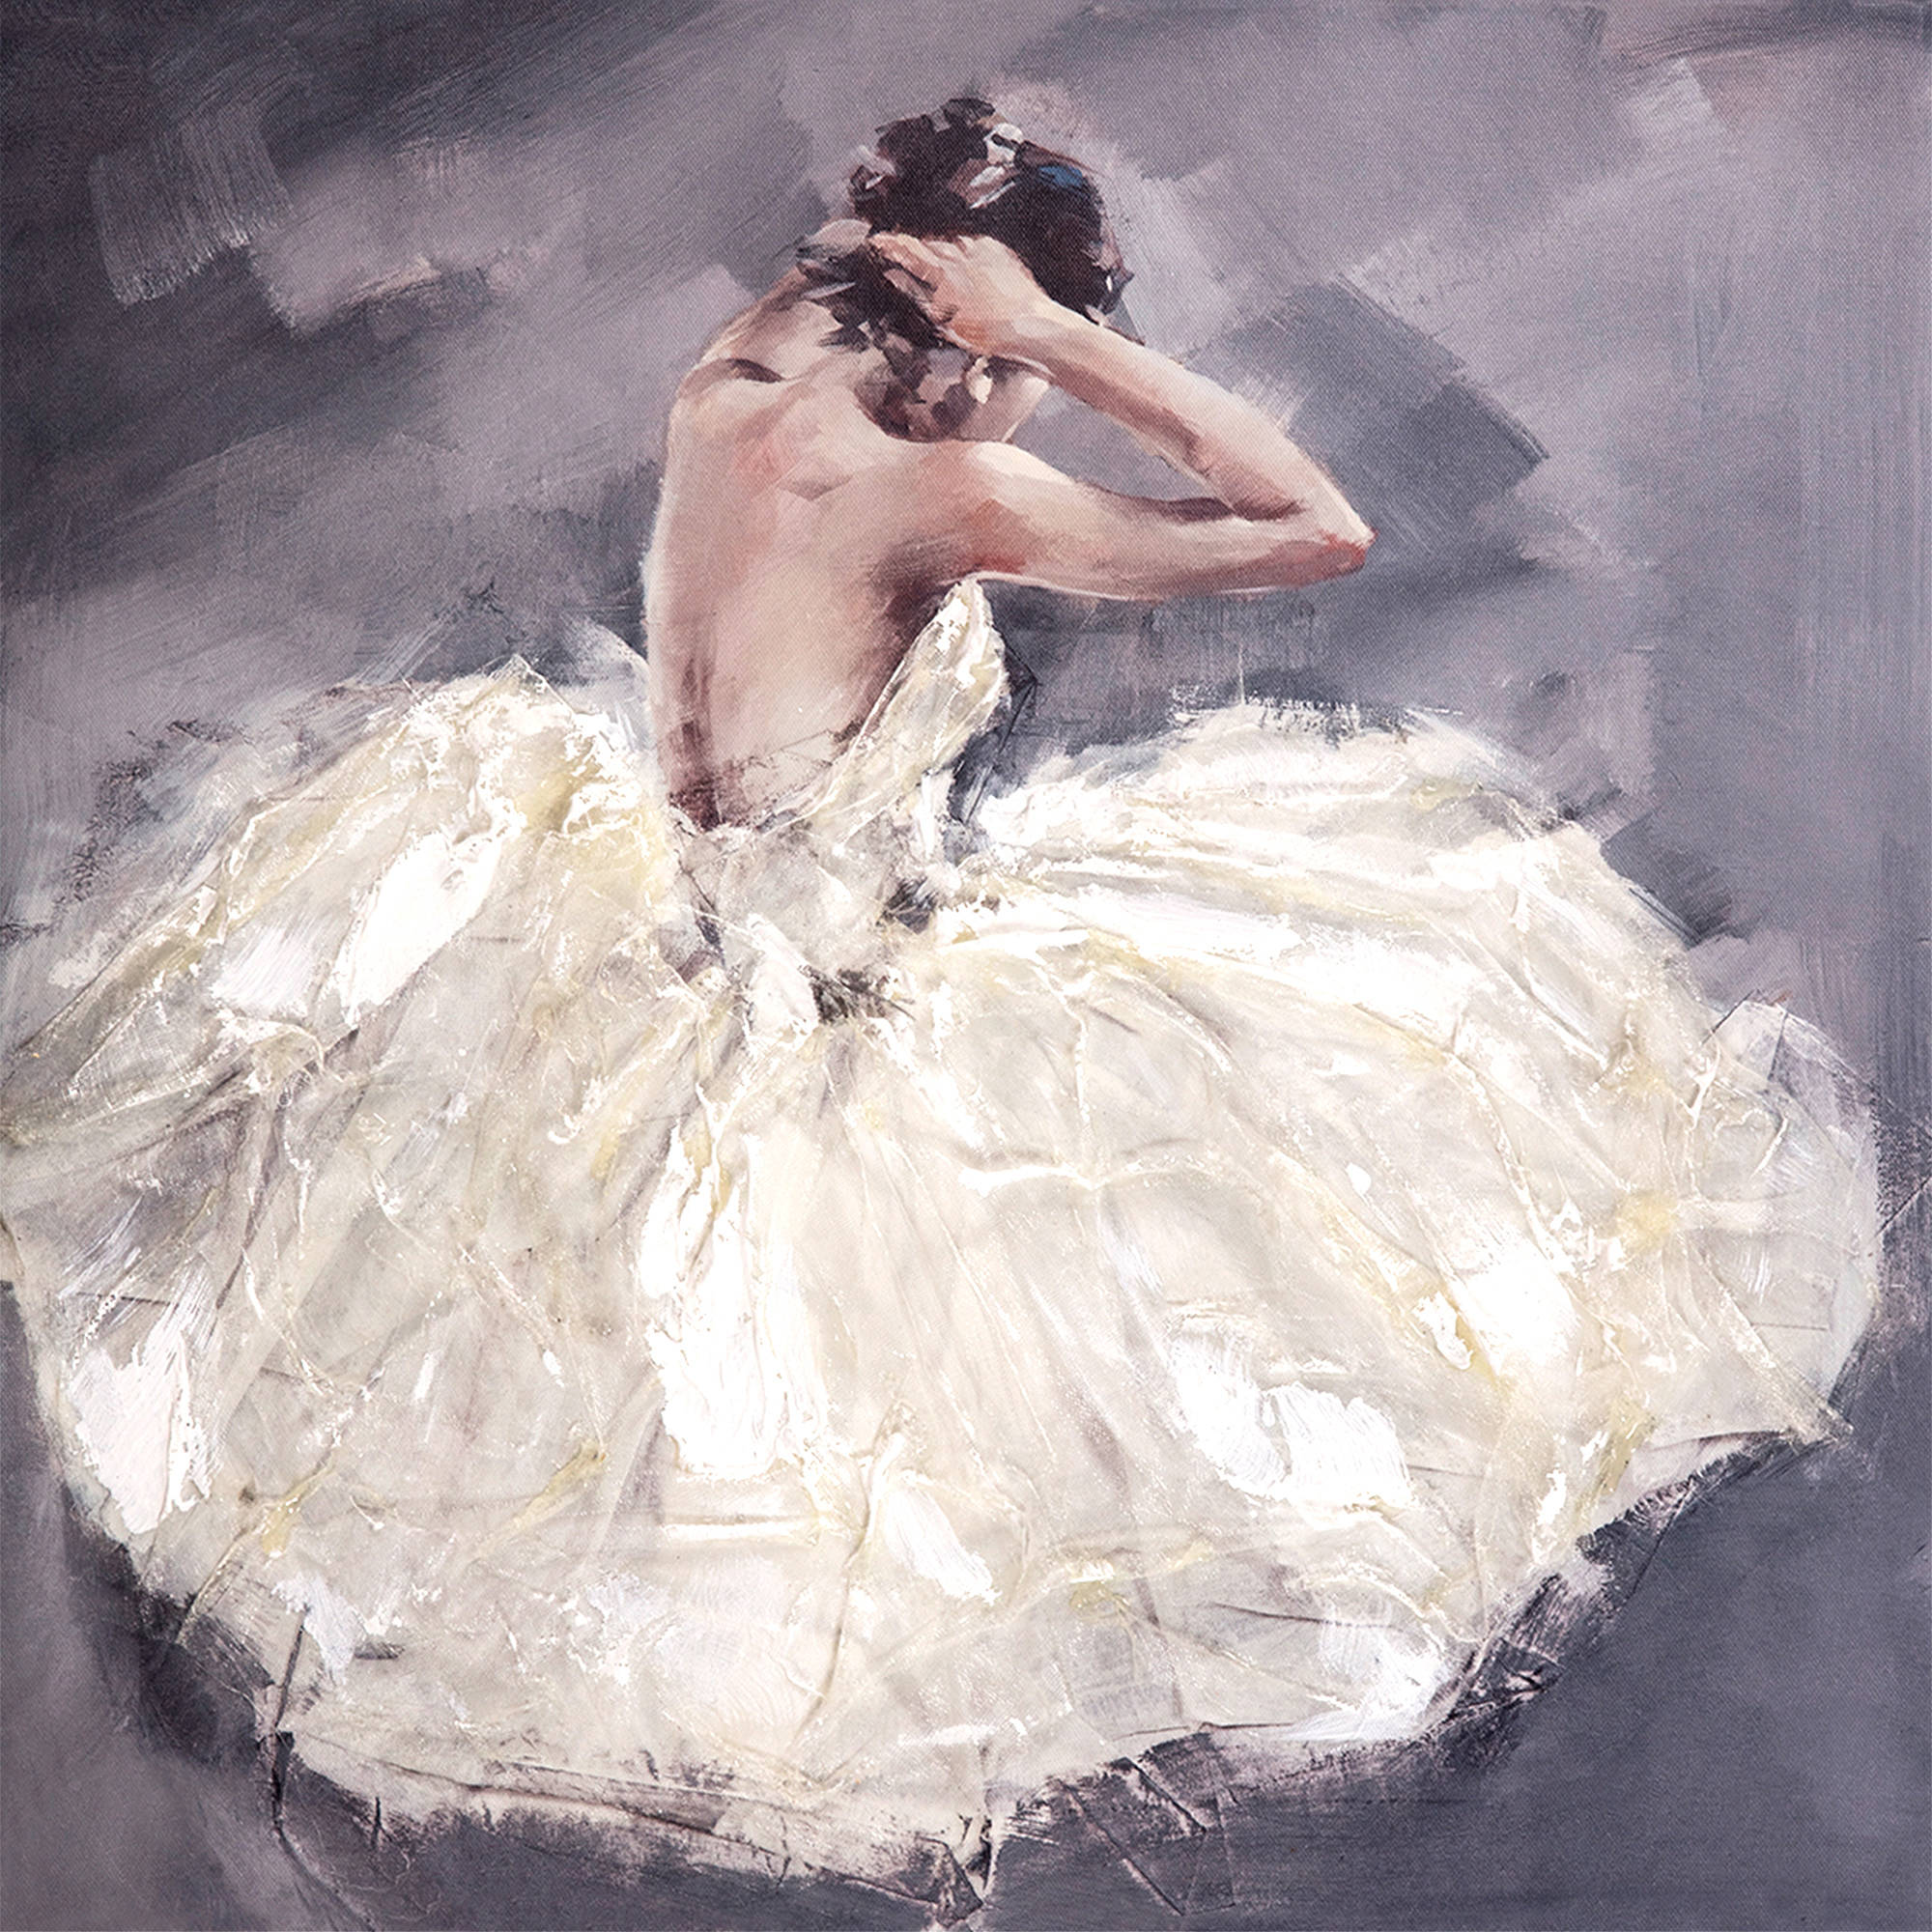 Abstract Ballerina - Textured White Dress Canvas Art Mixed Media 20 x 20 in.